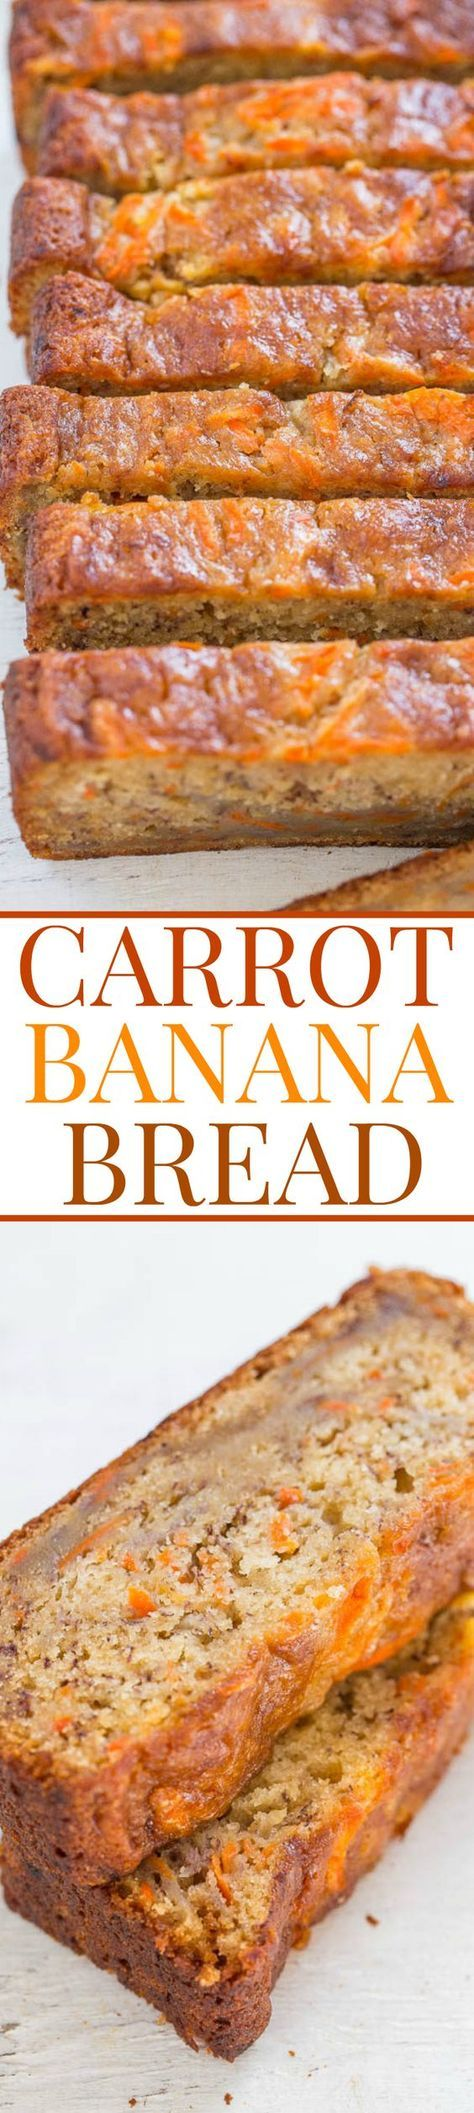 Carrot Banana Bread - EASY, no-mixer, super soft bread that reminds me of carrot cake but healthier!! Perfect for springtime, Easter (or ripe bananas)!!